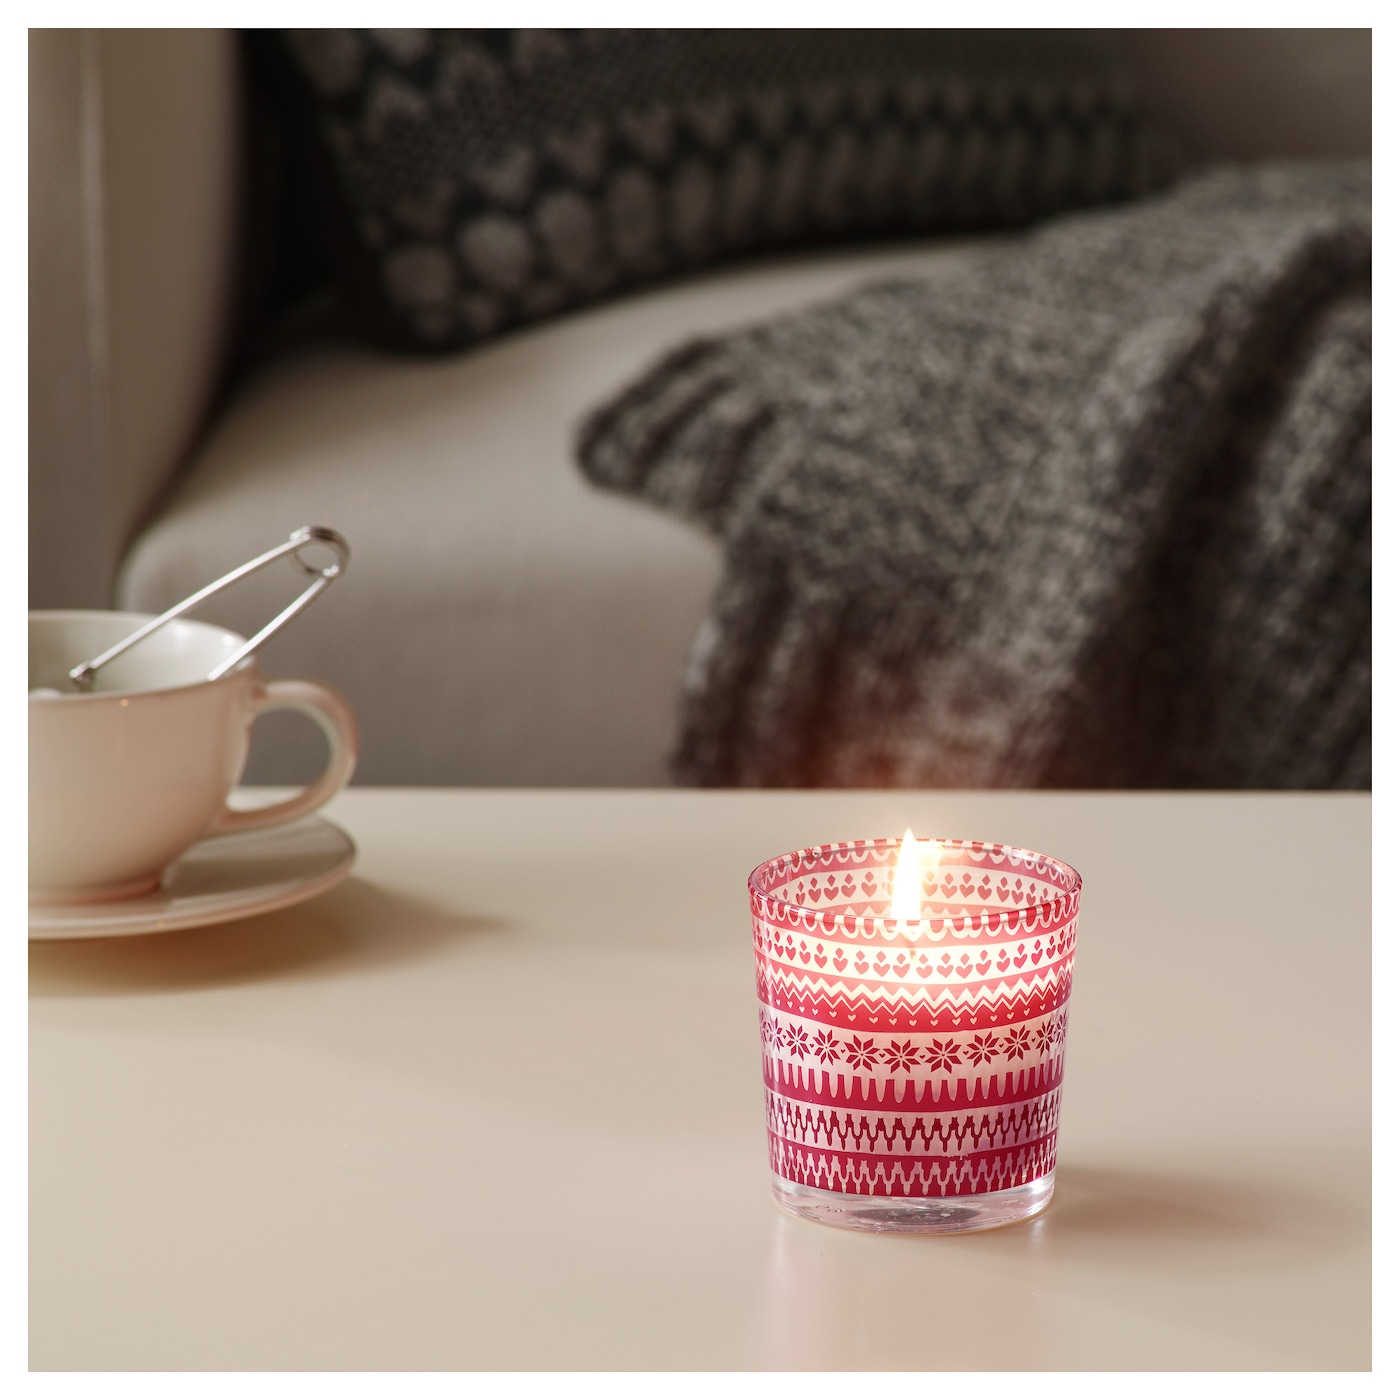 IKEA VINTER 2017 scented candle in glass A warm and spicy scent of berries, evergreen and vanilla.